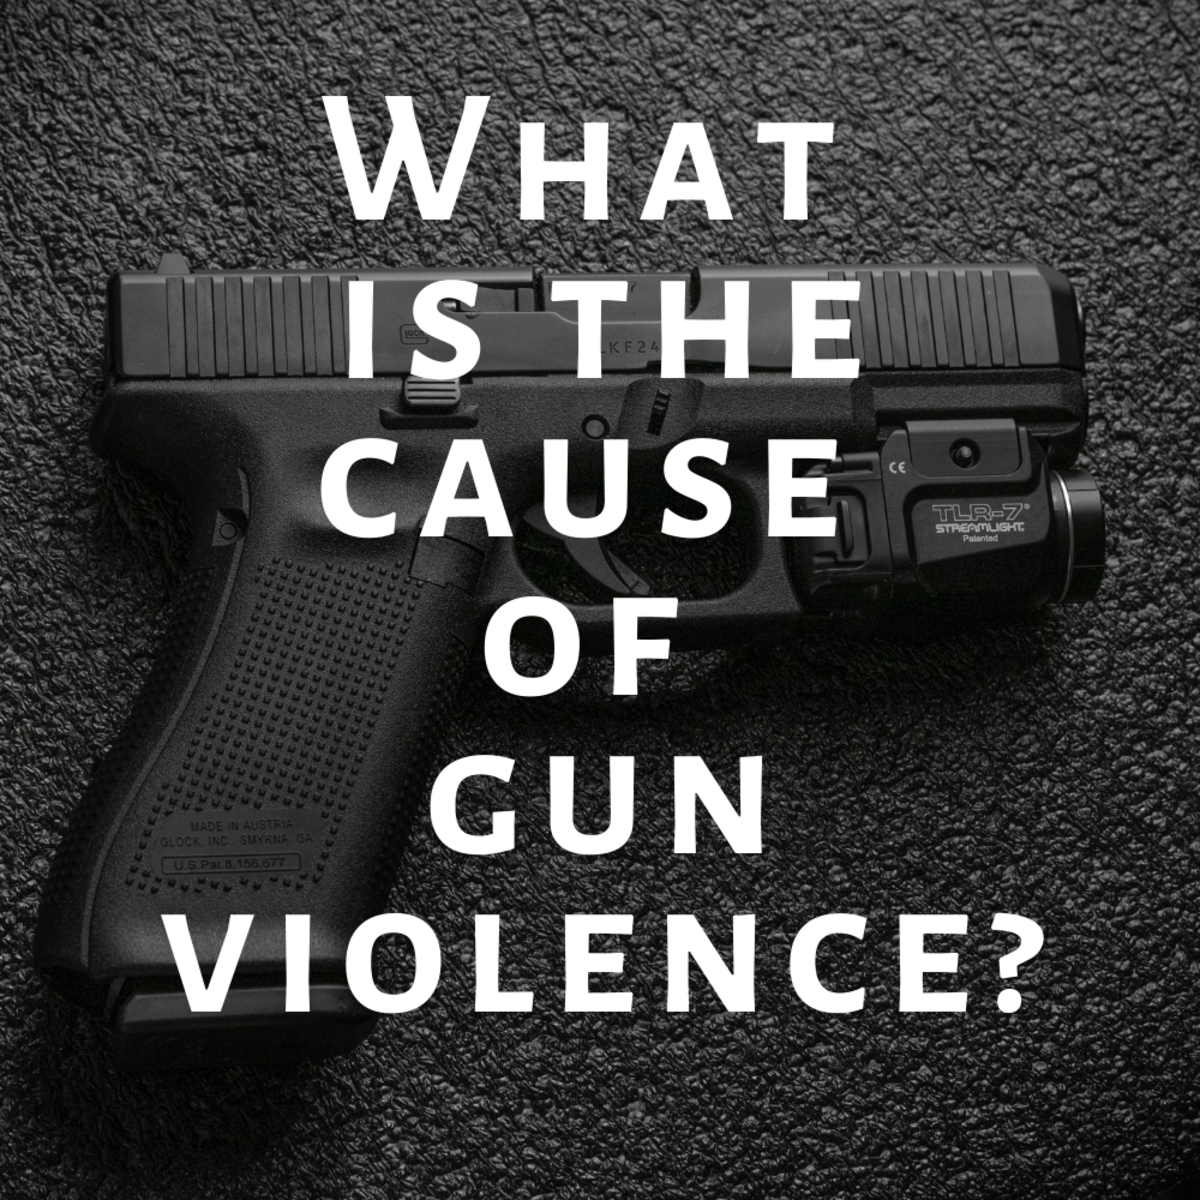 What are the root causes of gun violence in the US?